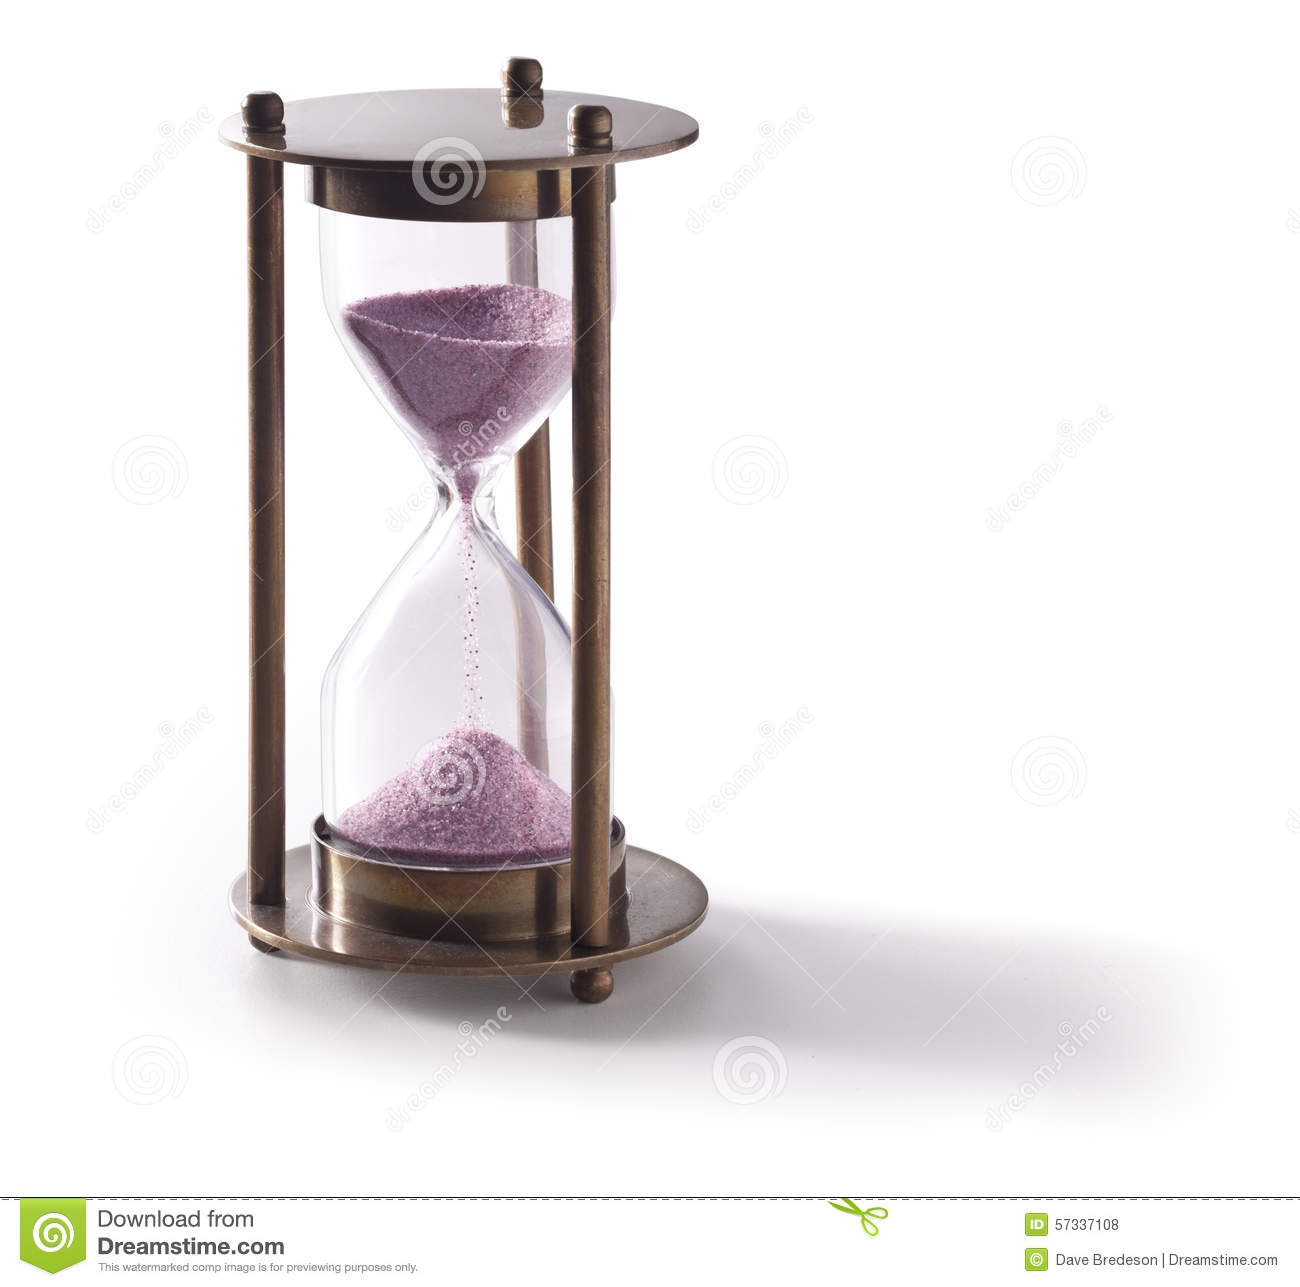 hour glass timer stock photo image of clear object 57337108